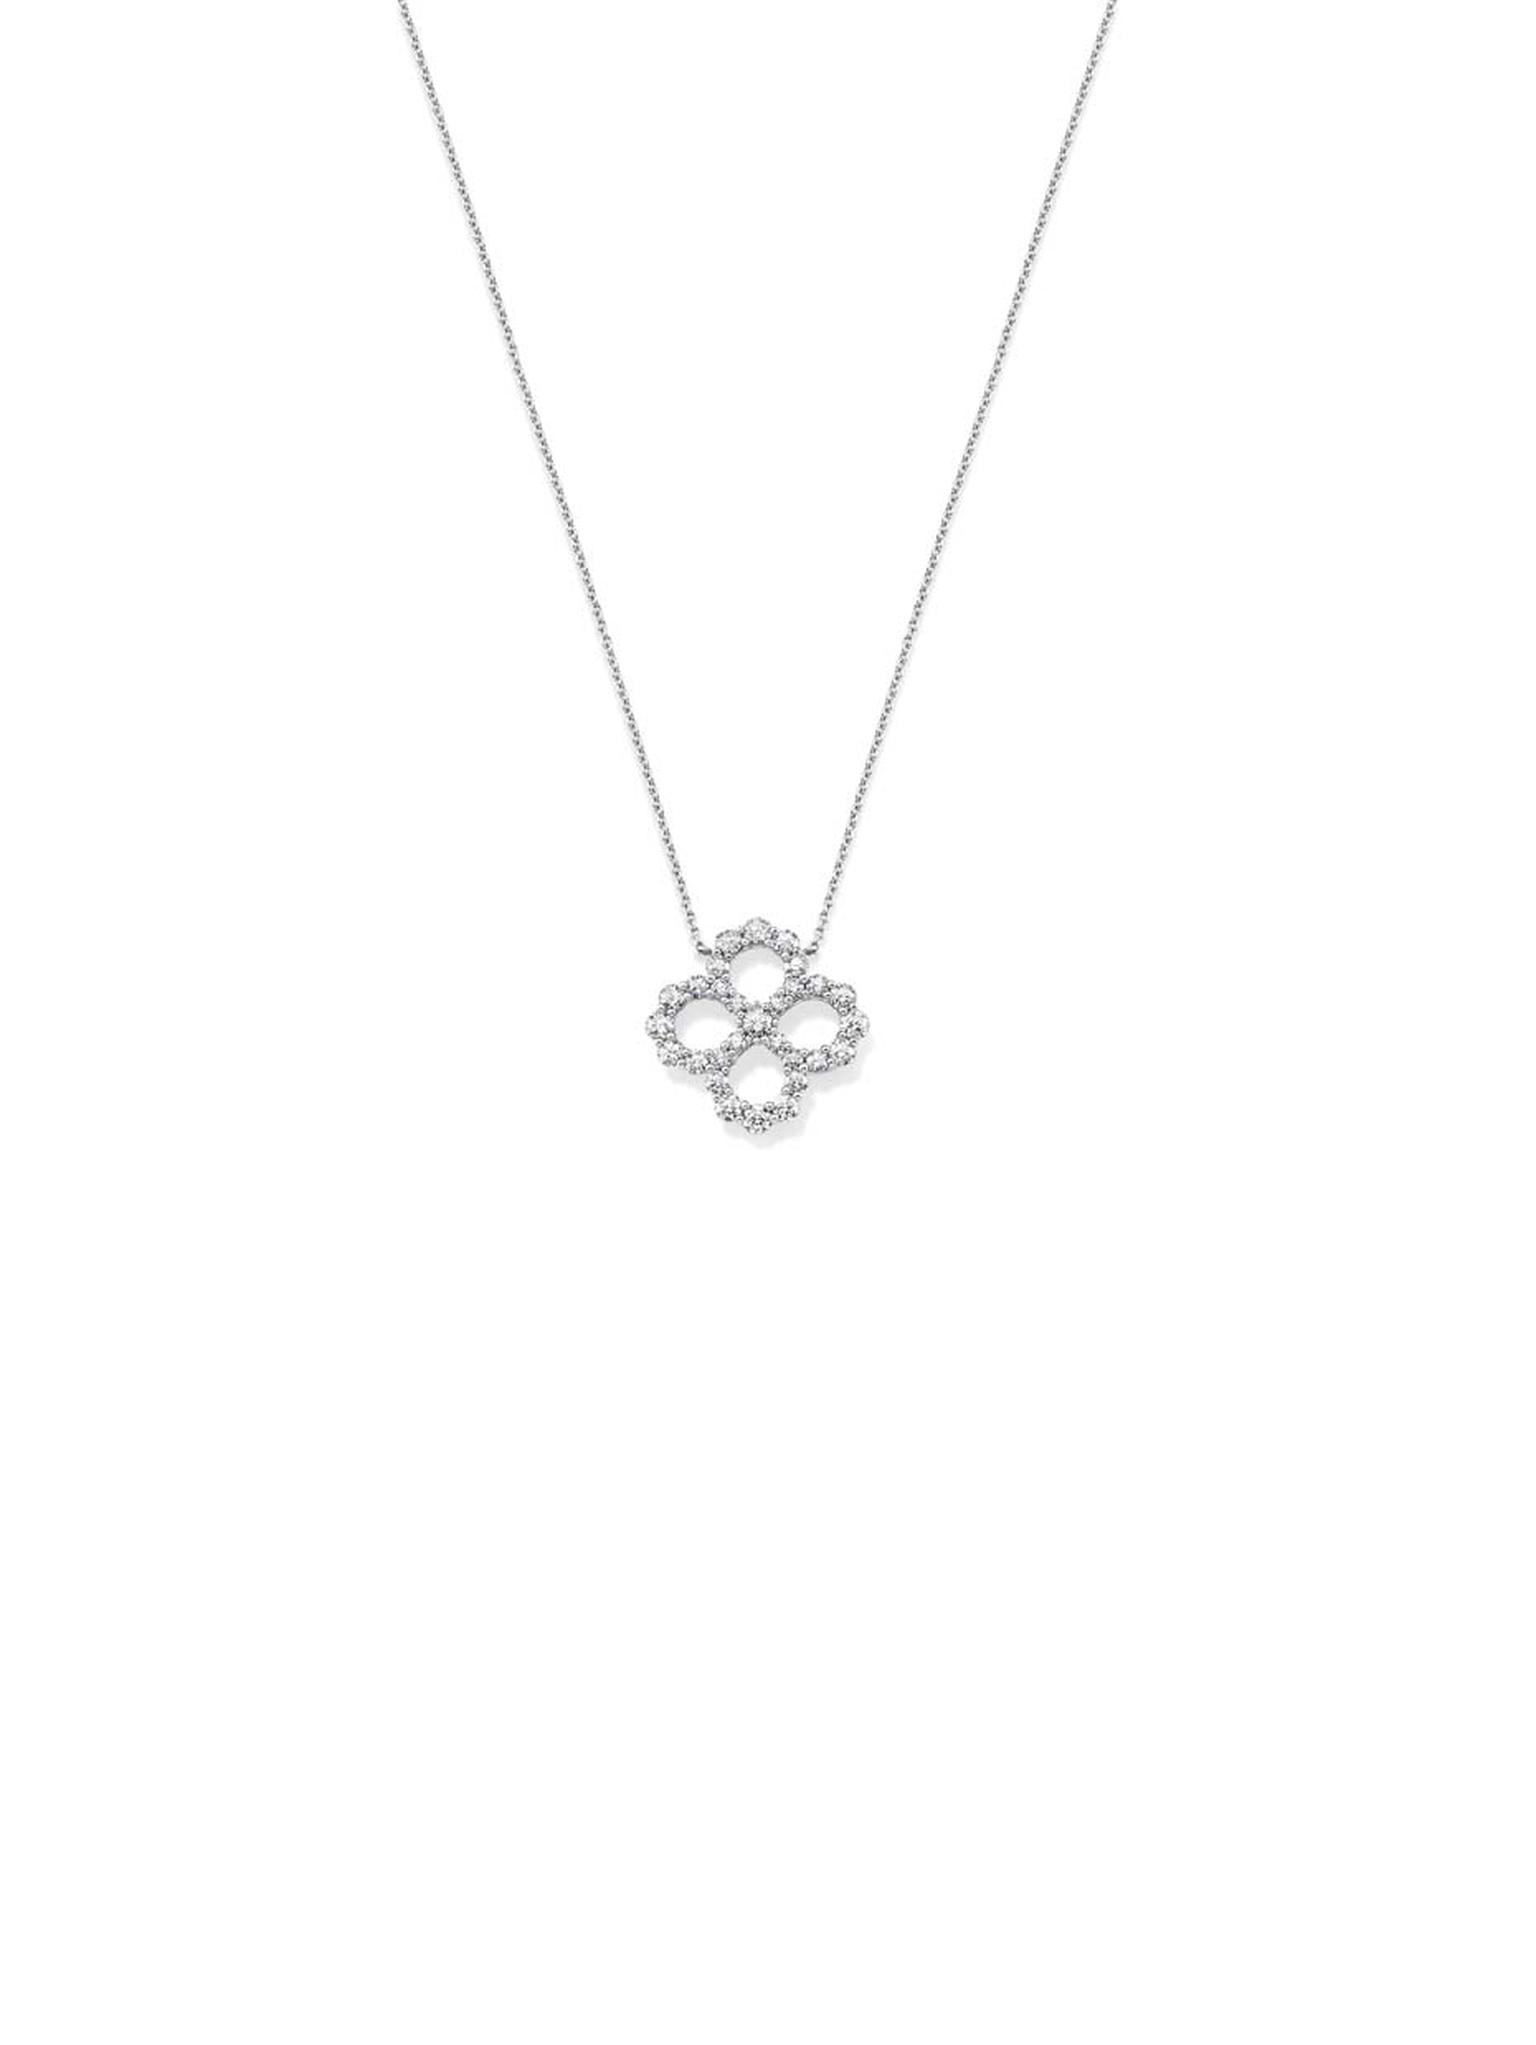 Harry Winston platinum Diamond Loop collection necklace.